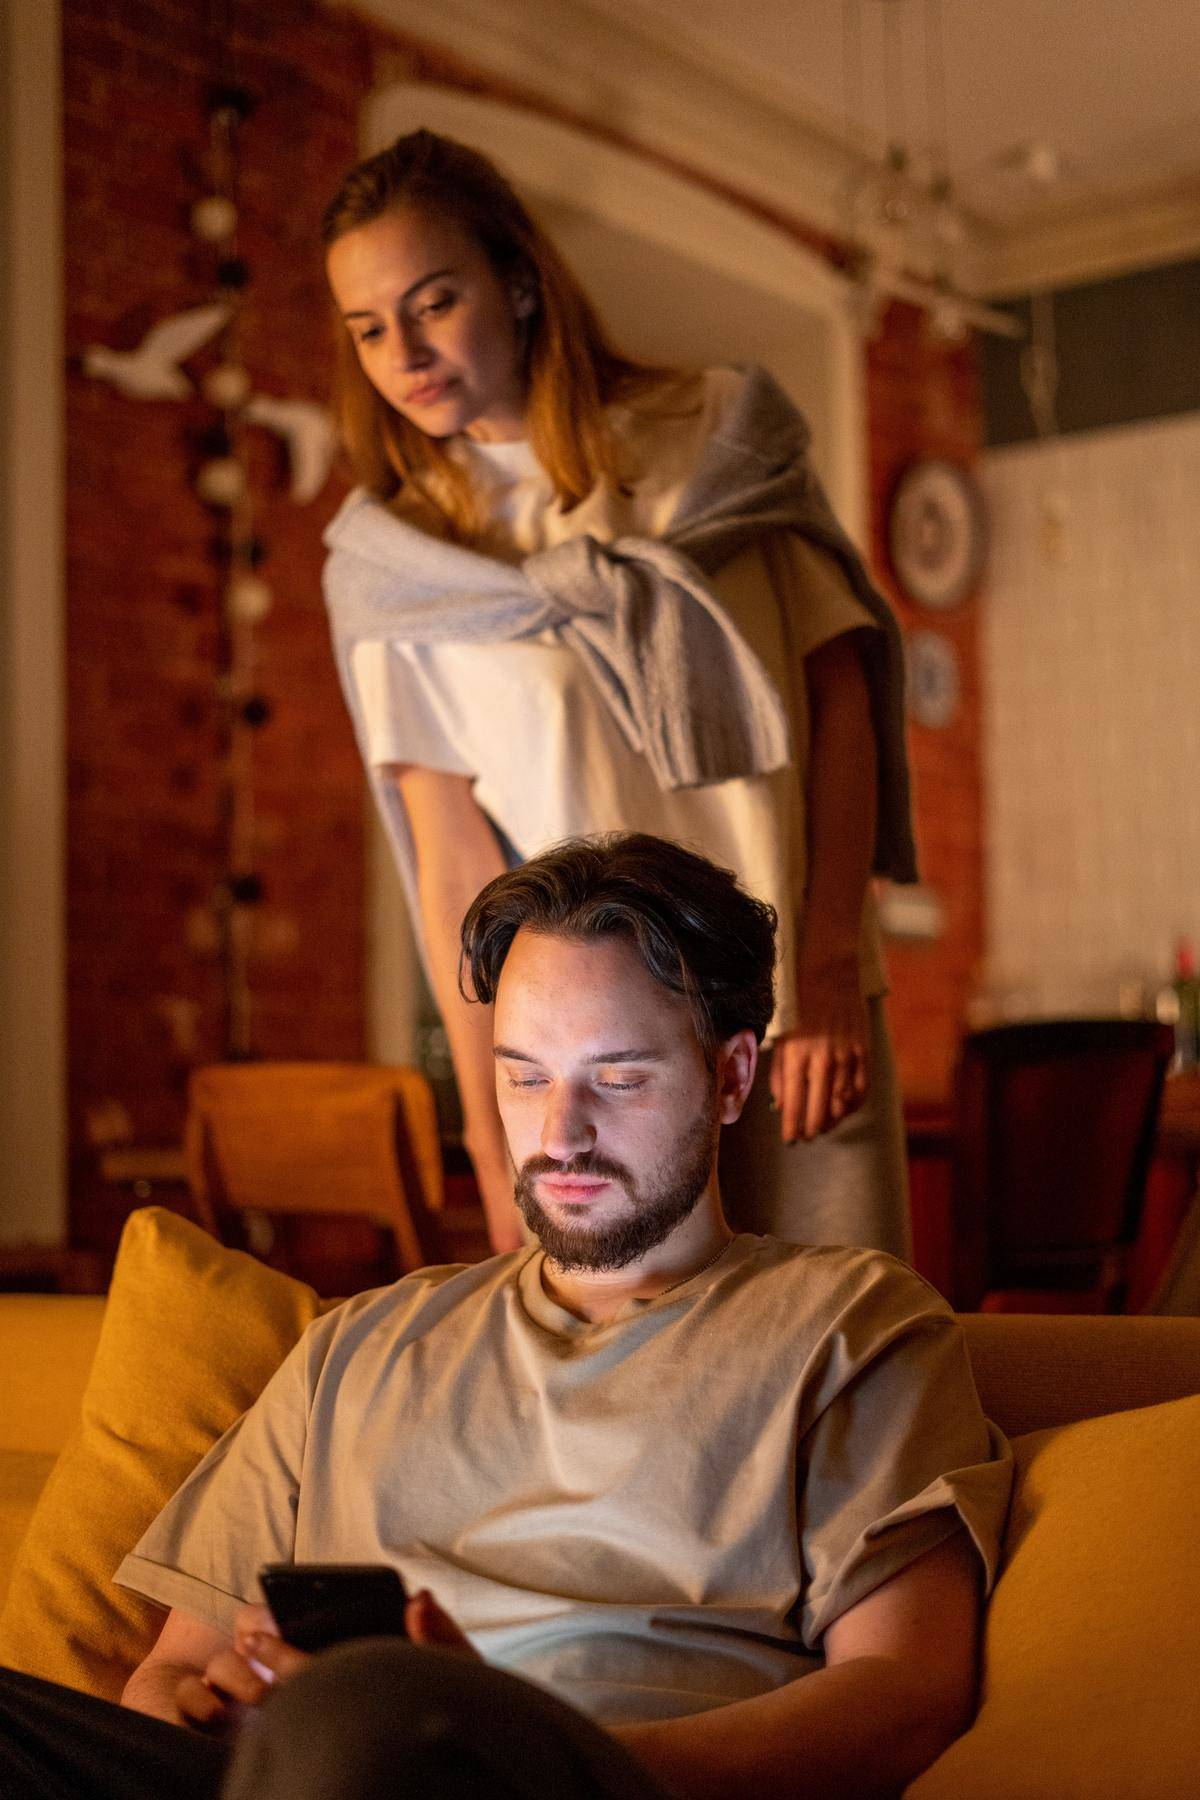 Woman looks over shoulder at man's phone while he sits on couch